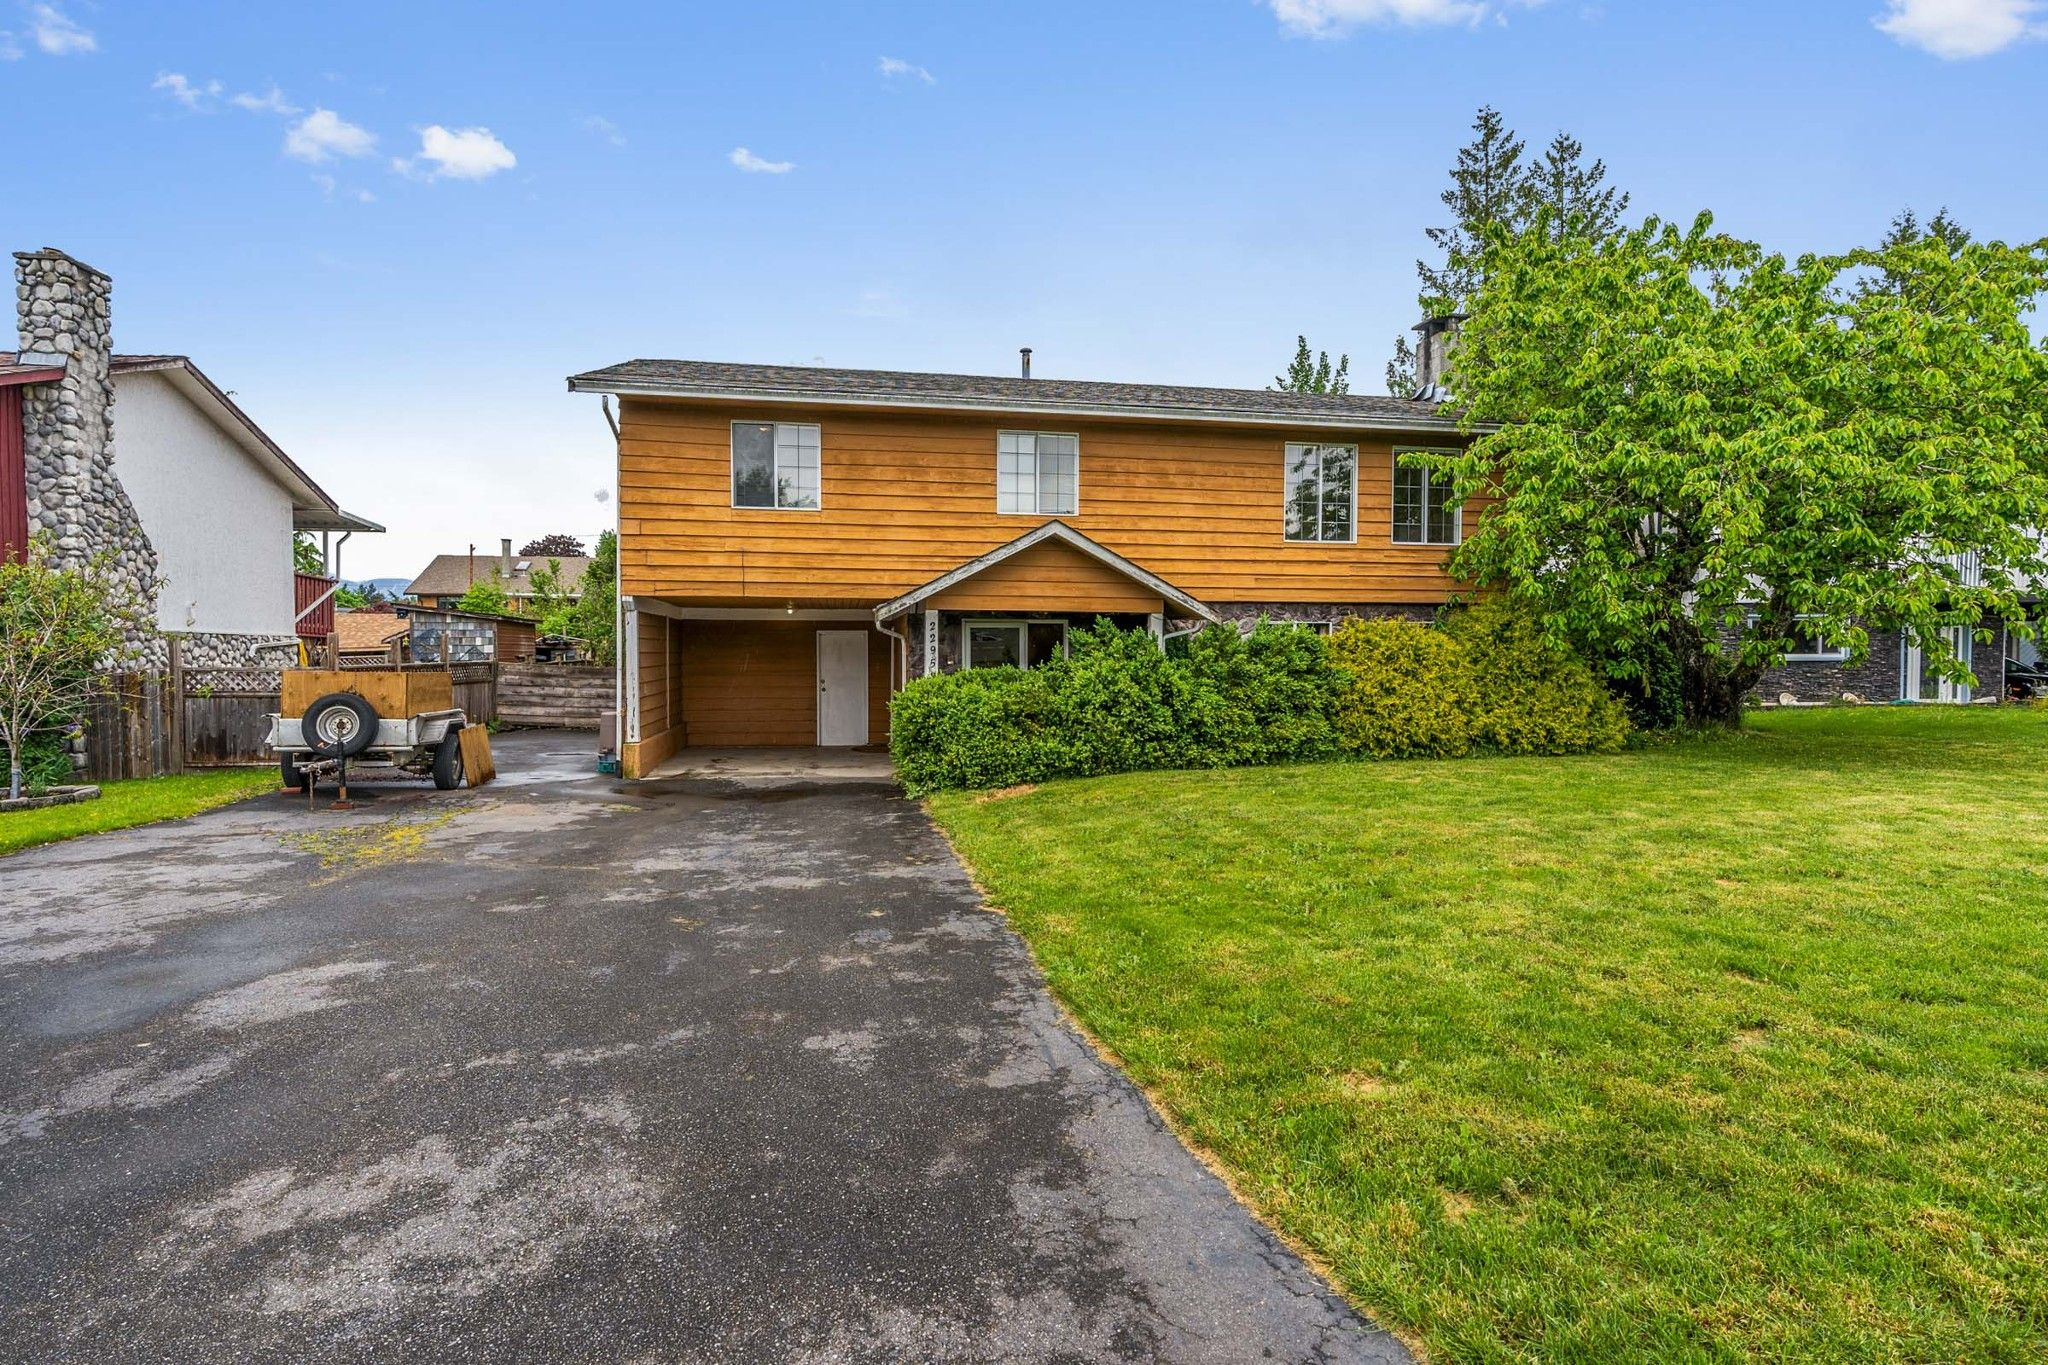 Main Photo: 22953 GILLEY Avenue in Maple Ridge: East Central House for sale : MLS®# R2456718